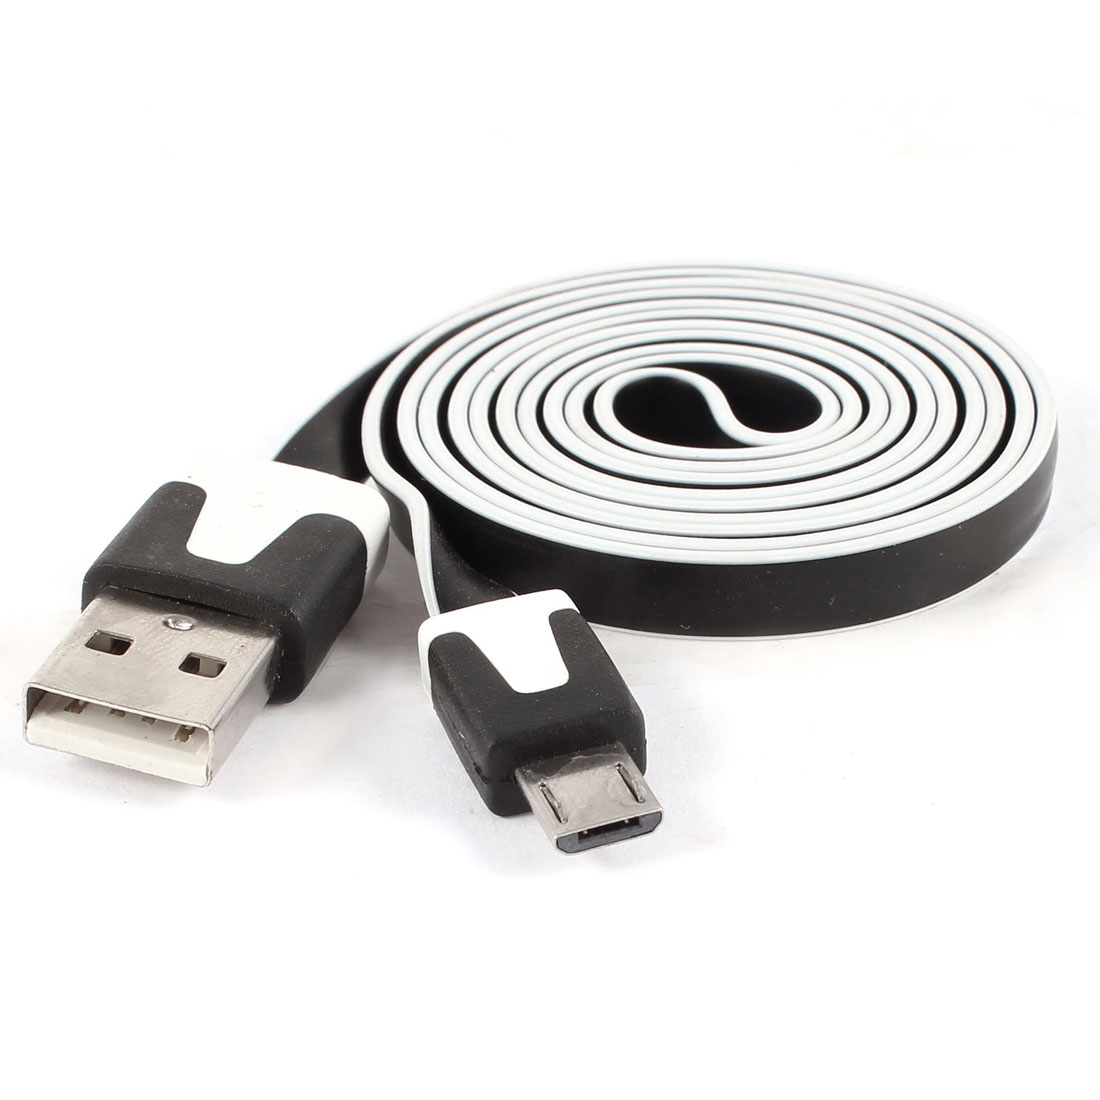 Unique Bargains USB A to Micro 5Pin M/M Data Charger White Edge Flat Cable Black 1M Long